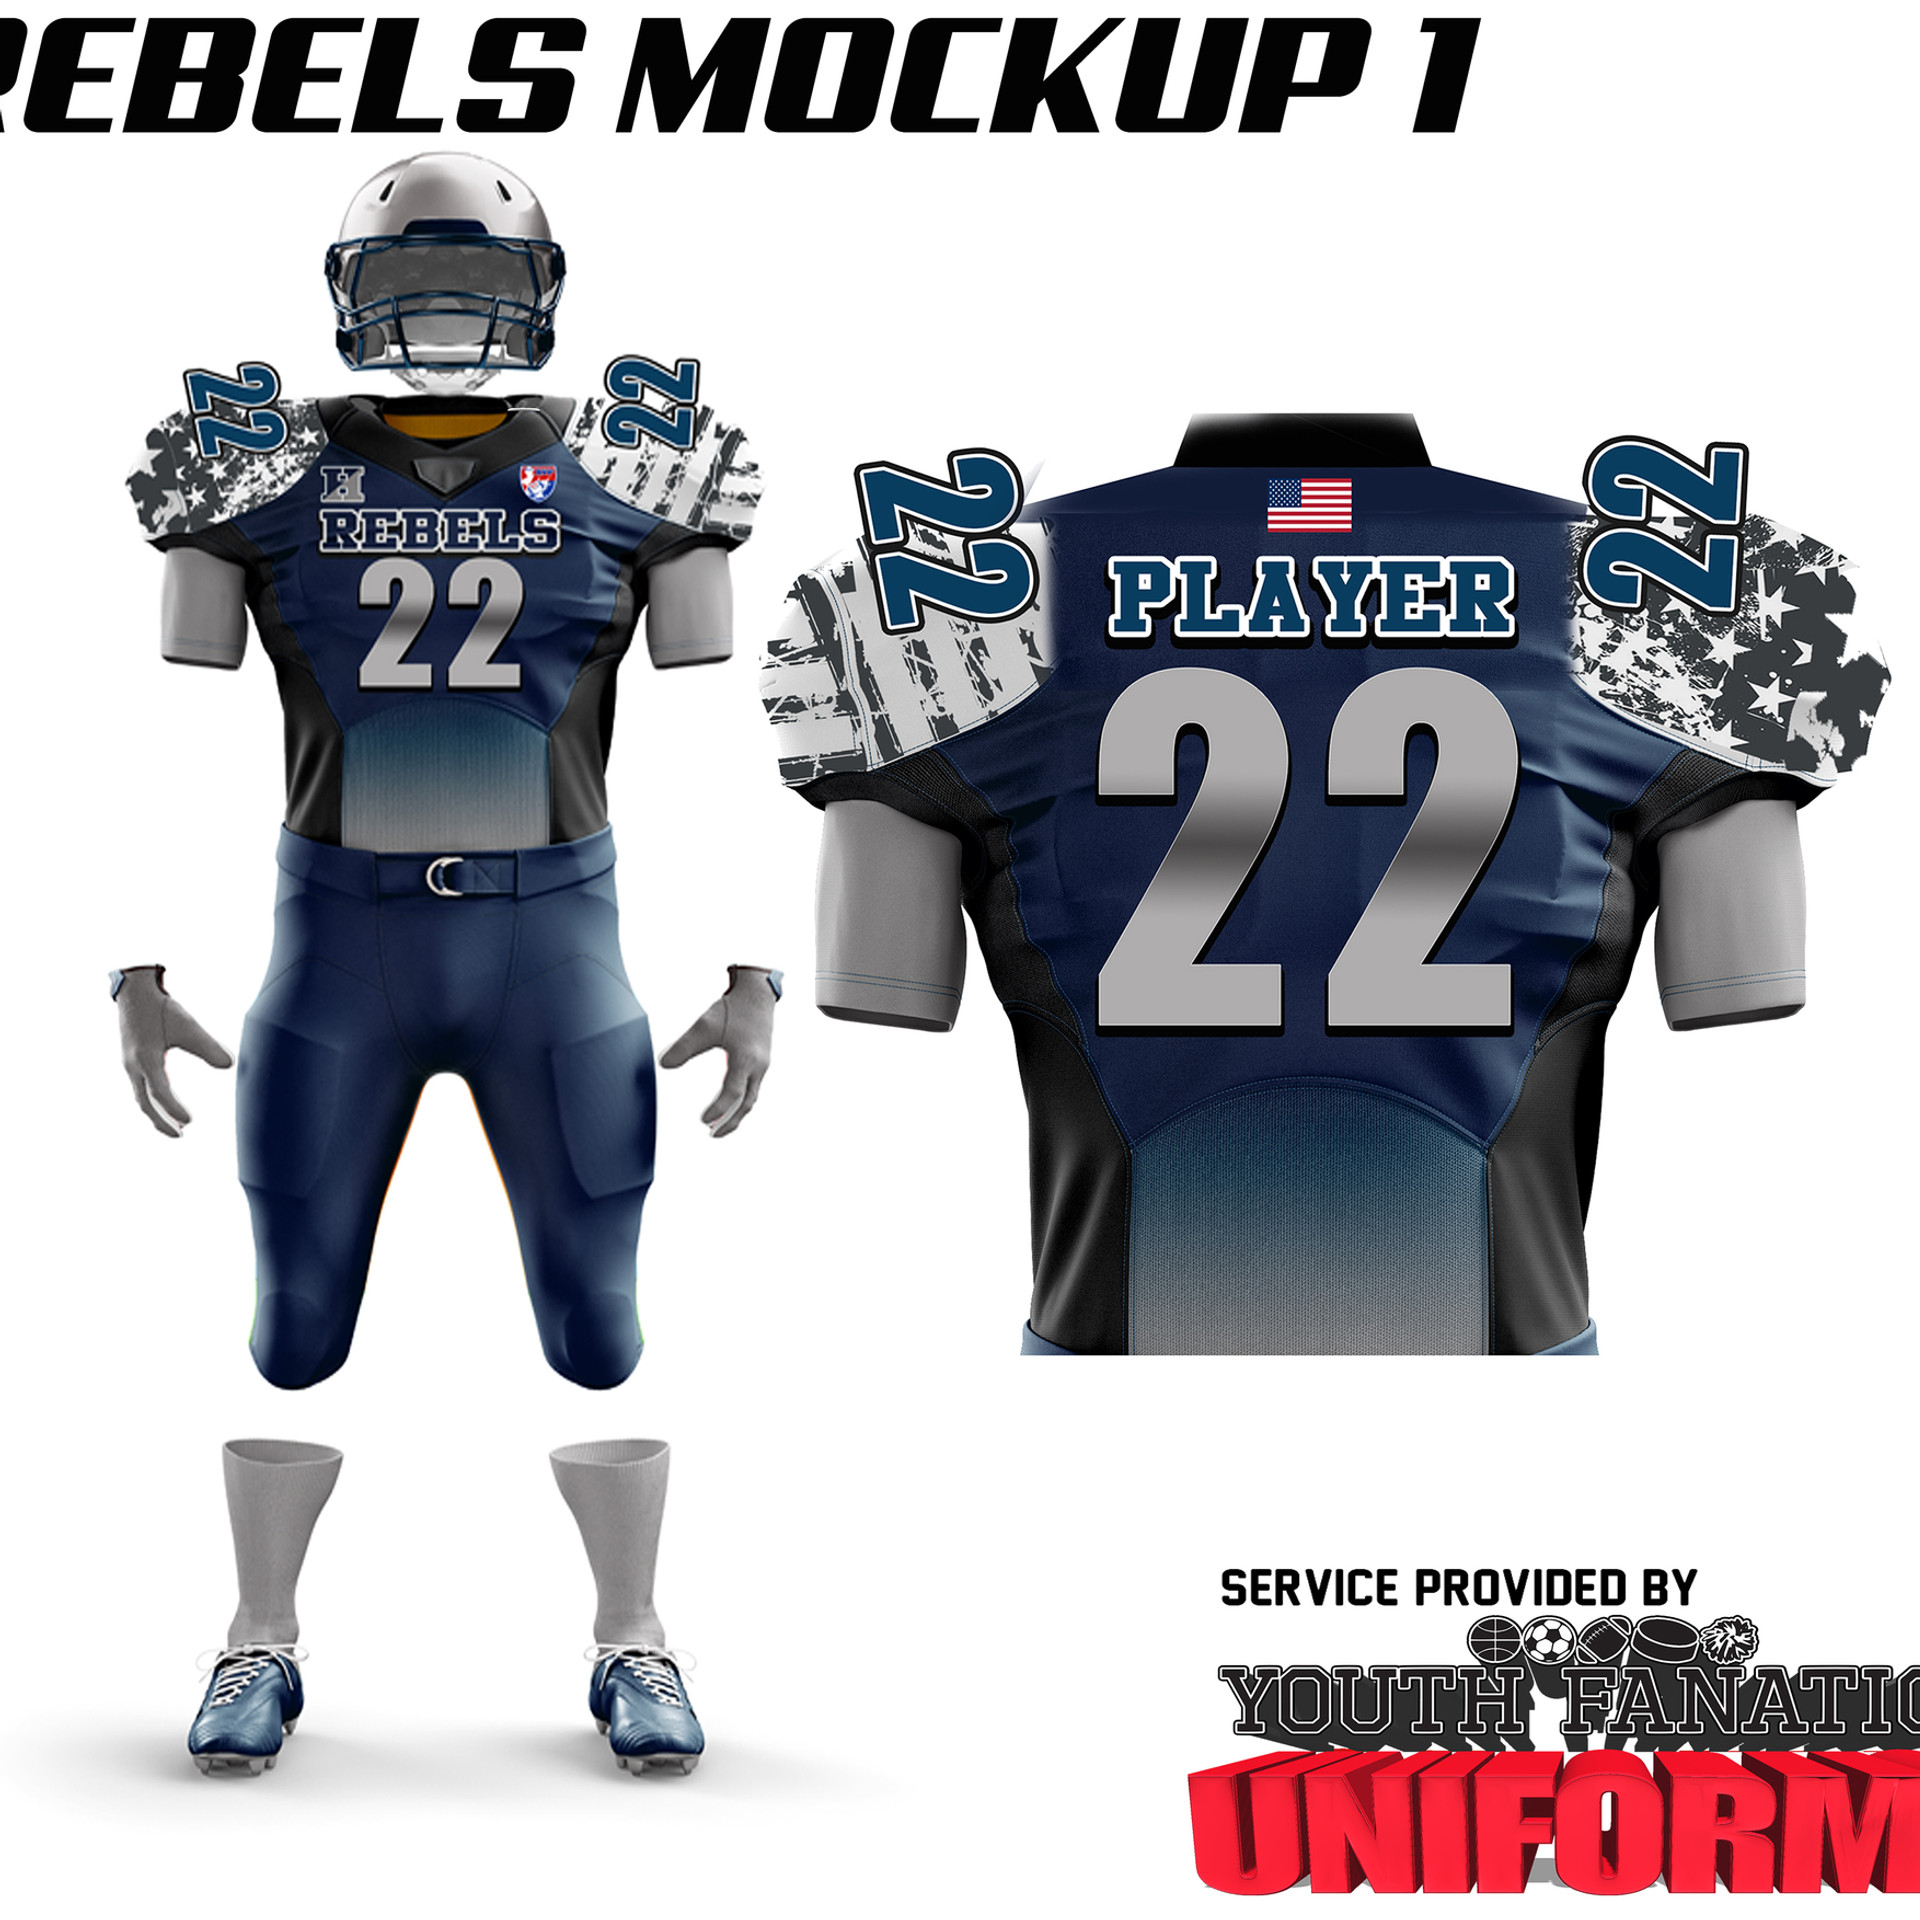 Howell Rebels Custom American Football Uniform Revision2.jpg